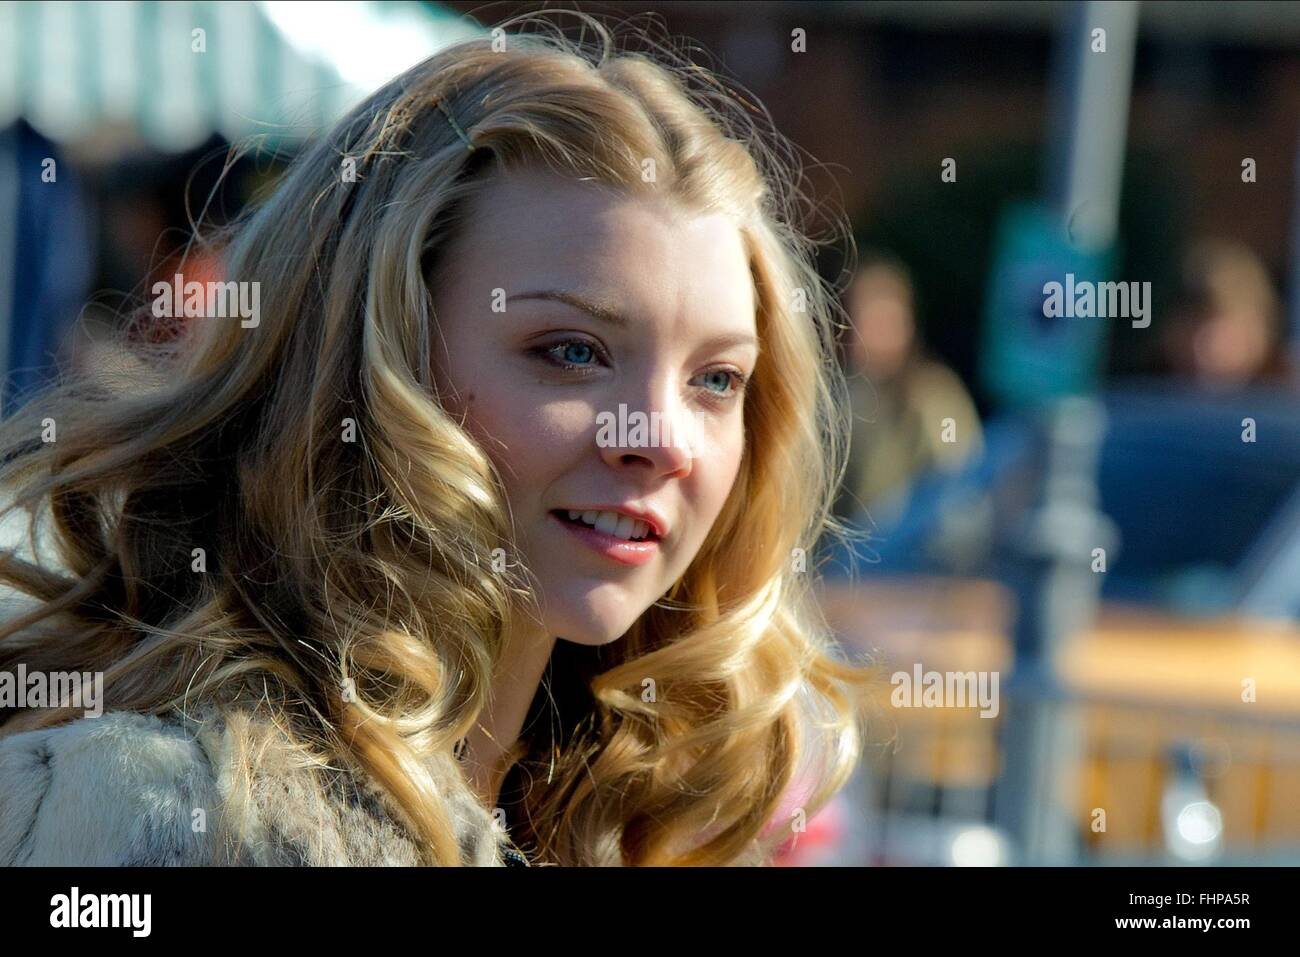 Natalie dormer rush 2013 stock photo 96991939 alamy natalie dormer rush 2013 voltagebd Image collections